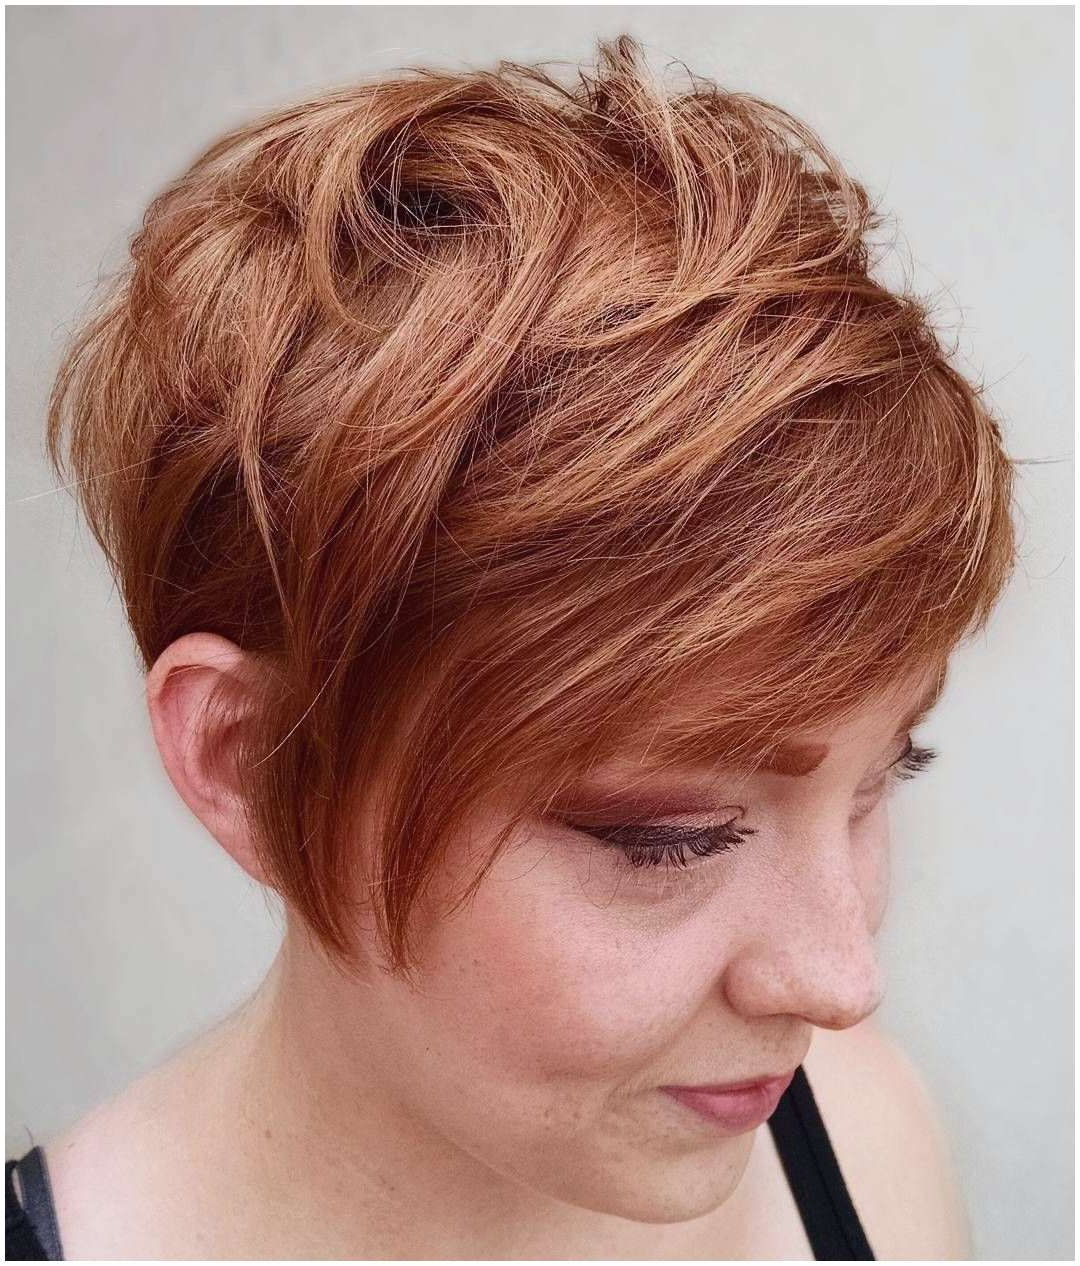 Best Of 60 Overwhelming Ideas For Short Choppy Haircuts Pinterest In Short Choppy Hairstyles For Thick Hair (View 6 of 20)